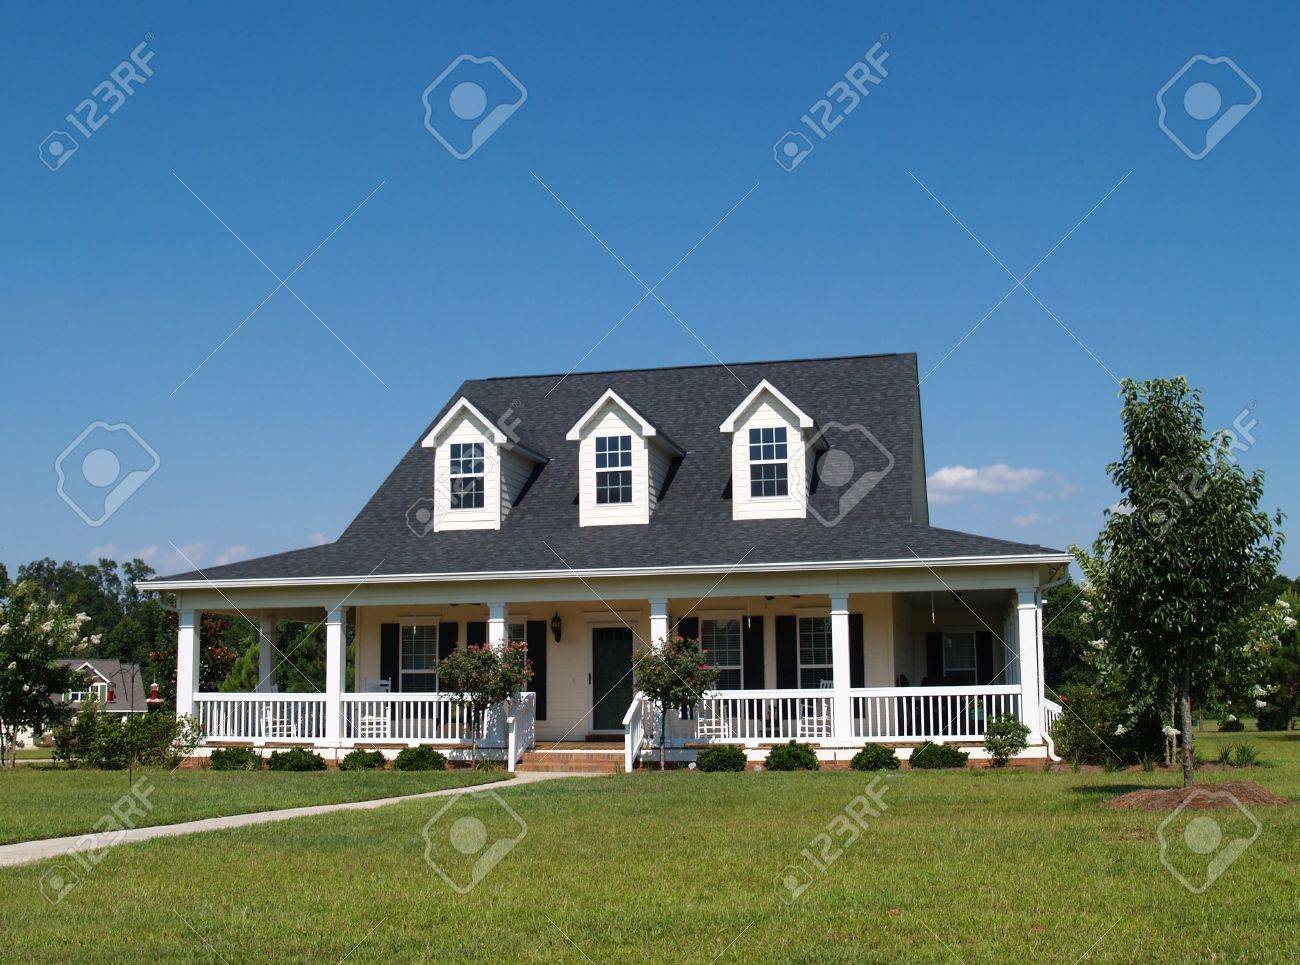 Two story residential home with vinyl or board siding on the facade. - 5520096